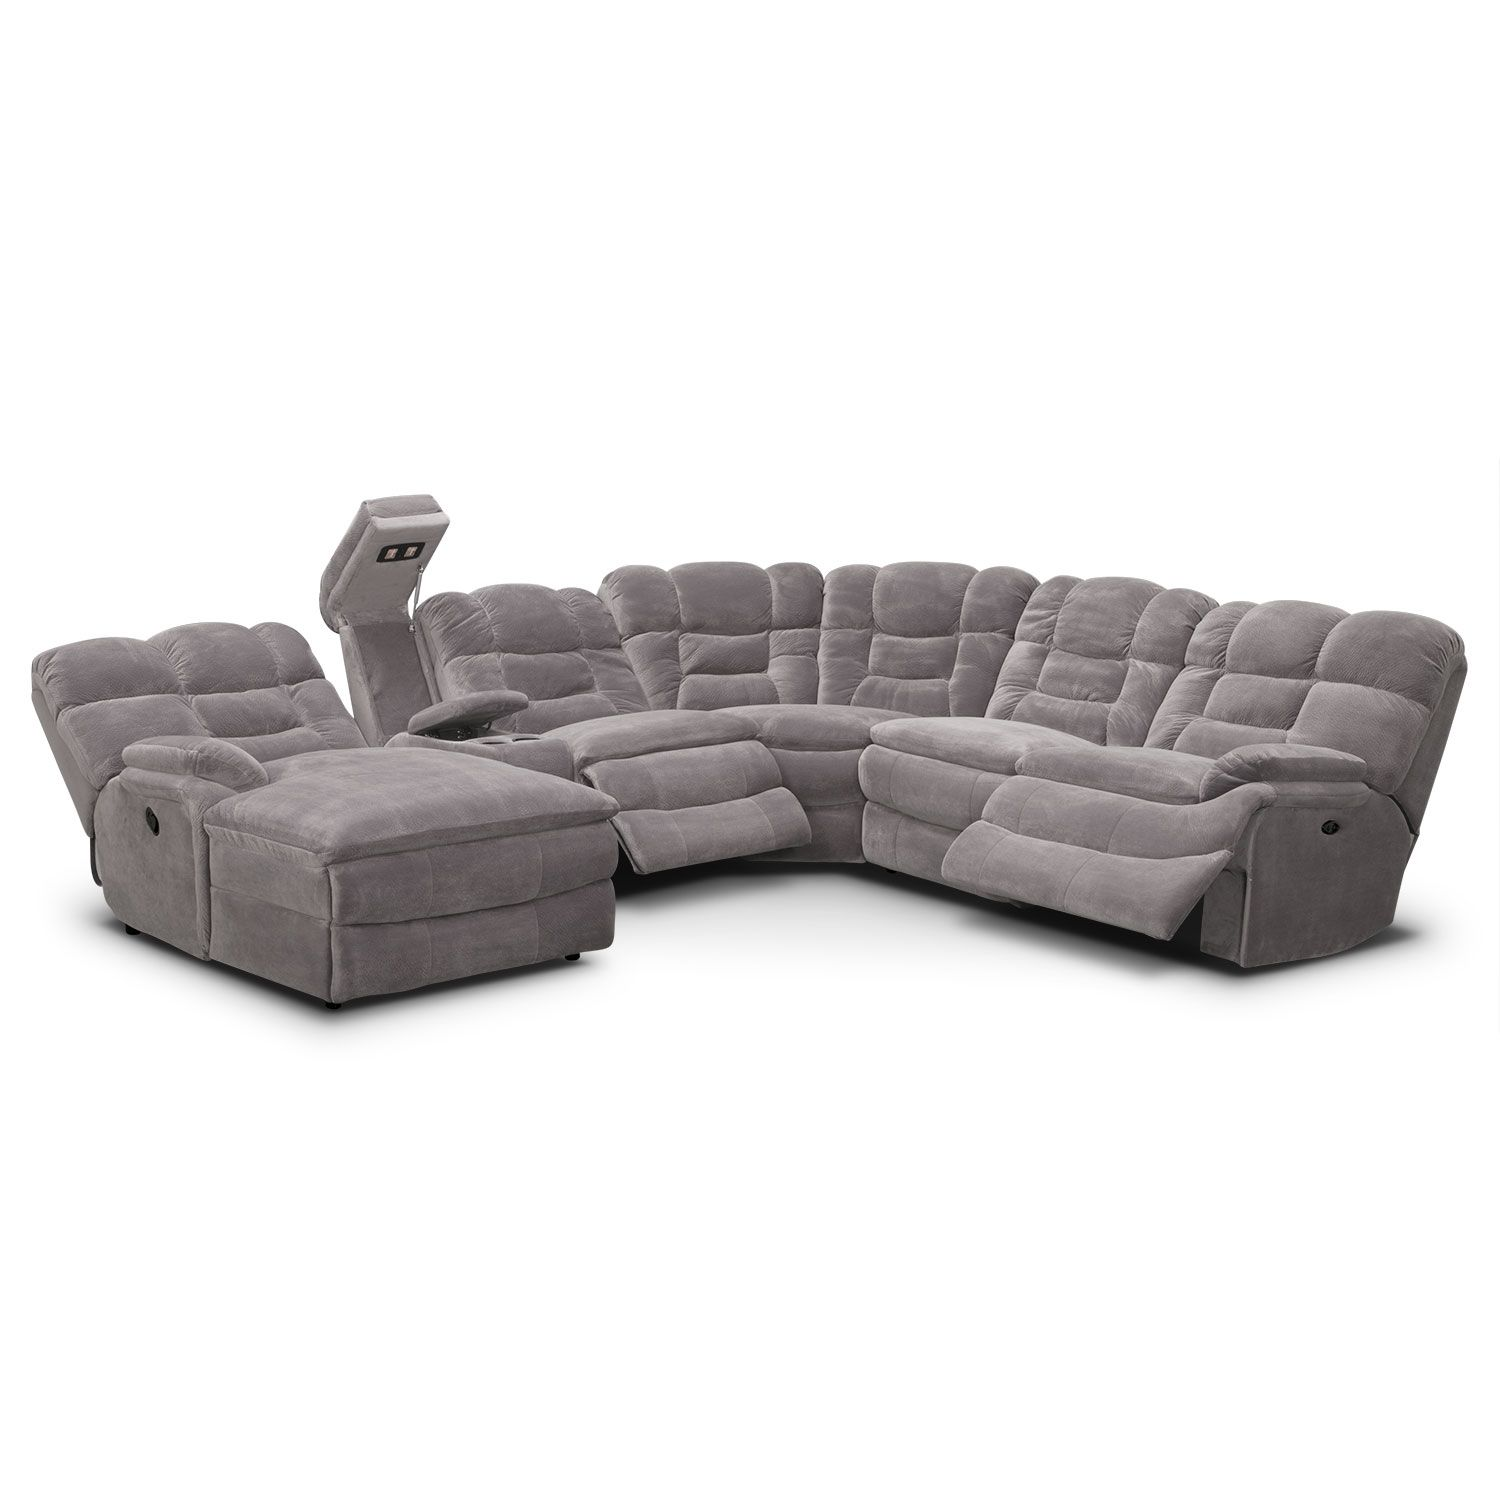 Big Softie 6 Piece Power Reclining Sectional With Chaise And 2 Reclining Seats Reclining Sectional With Chaise Reclining Sectional Value City Furniture